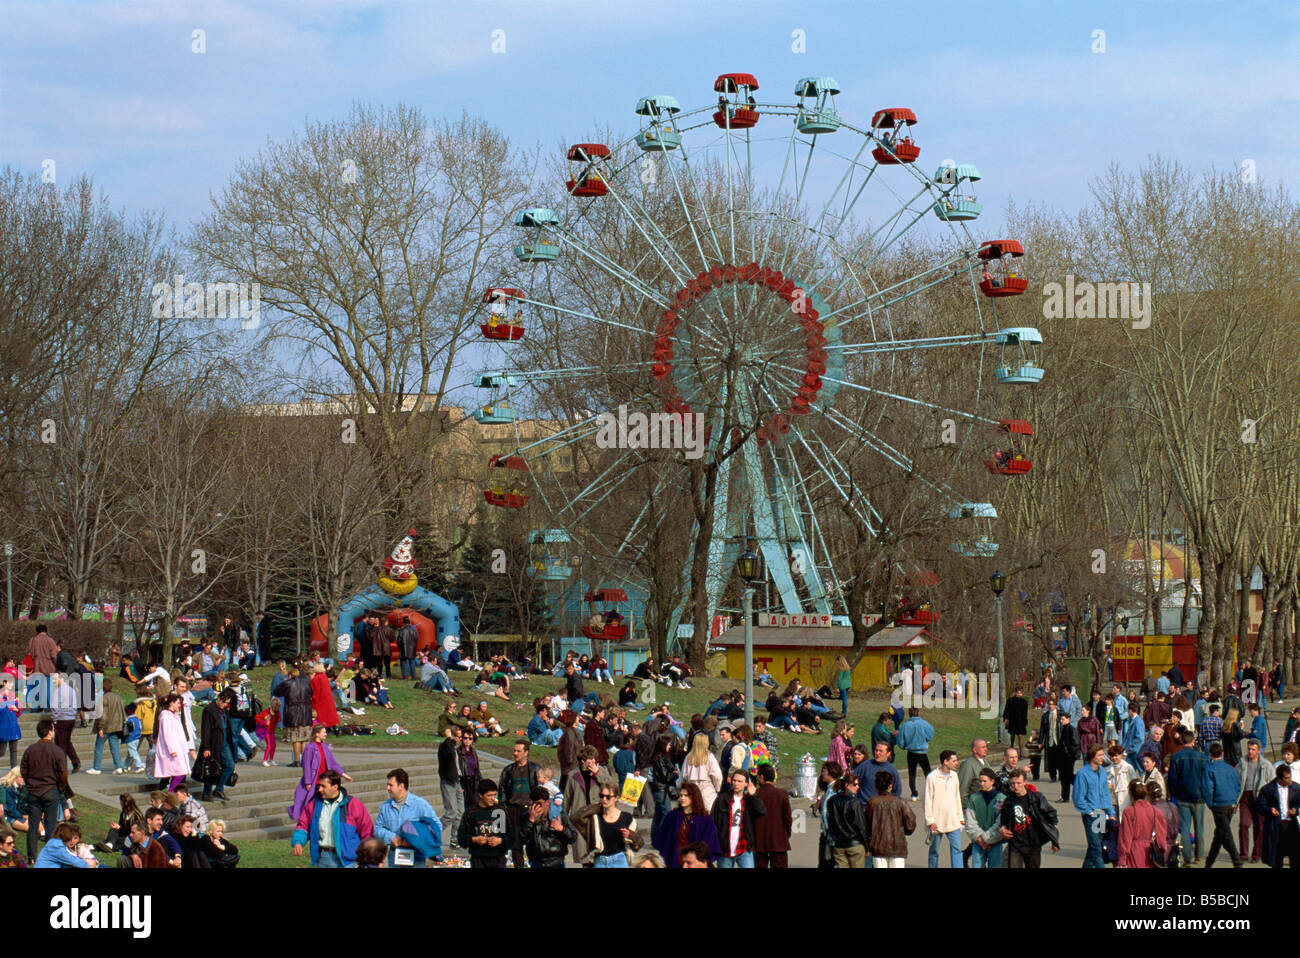 Crowds at a funfair with a big wheel during Earth Day Festival in Gorky Park in Moscow Russia G Hellier - Stock Image